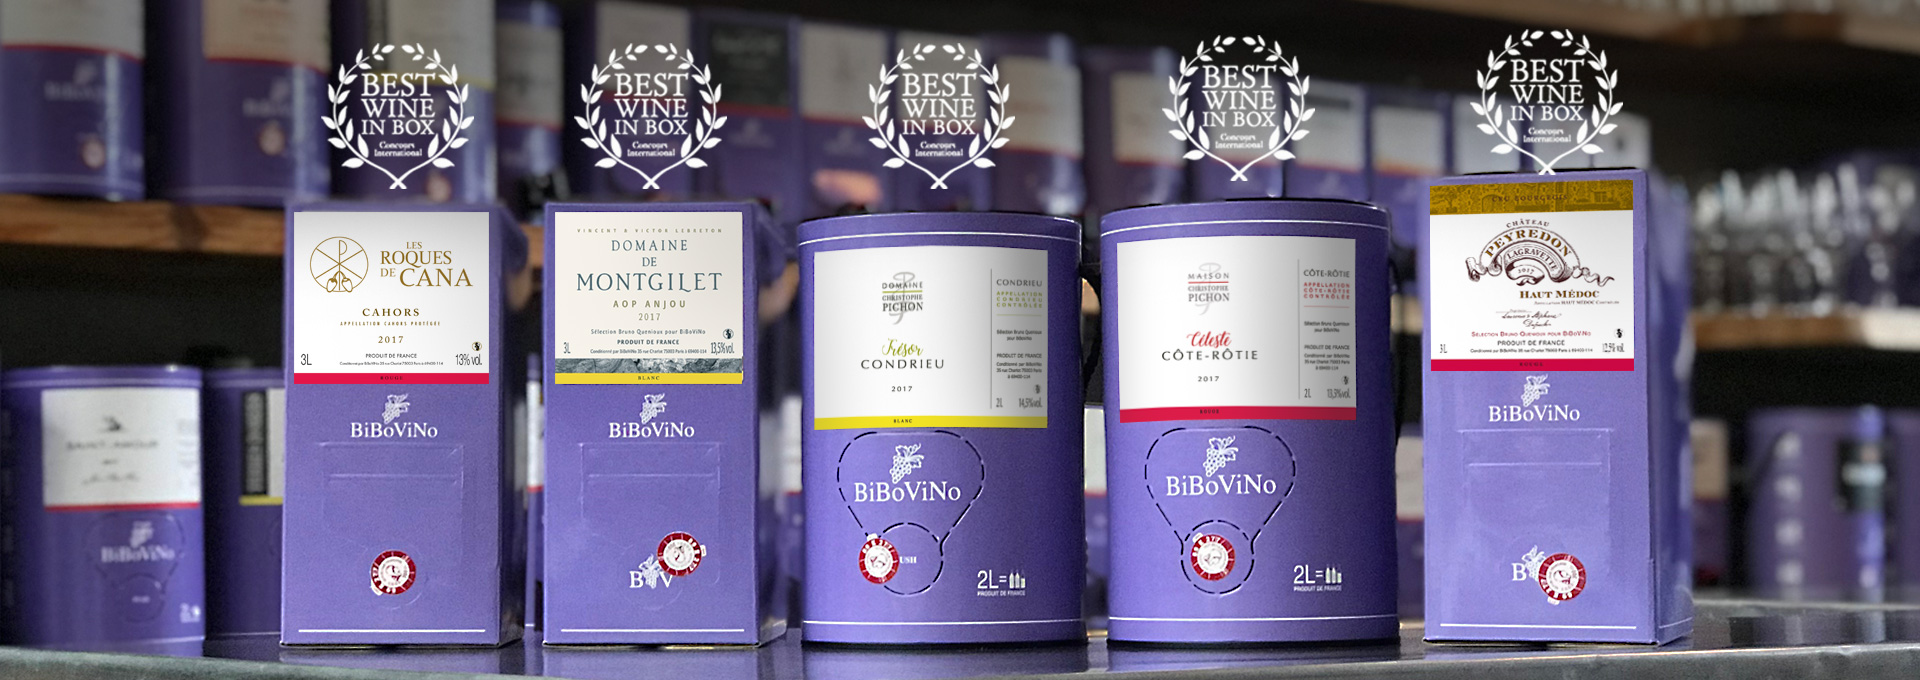 """Médailles d'or concours international """"Best Wine in Box 2019"""""""